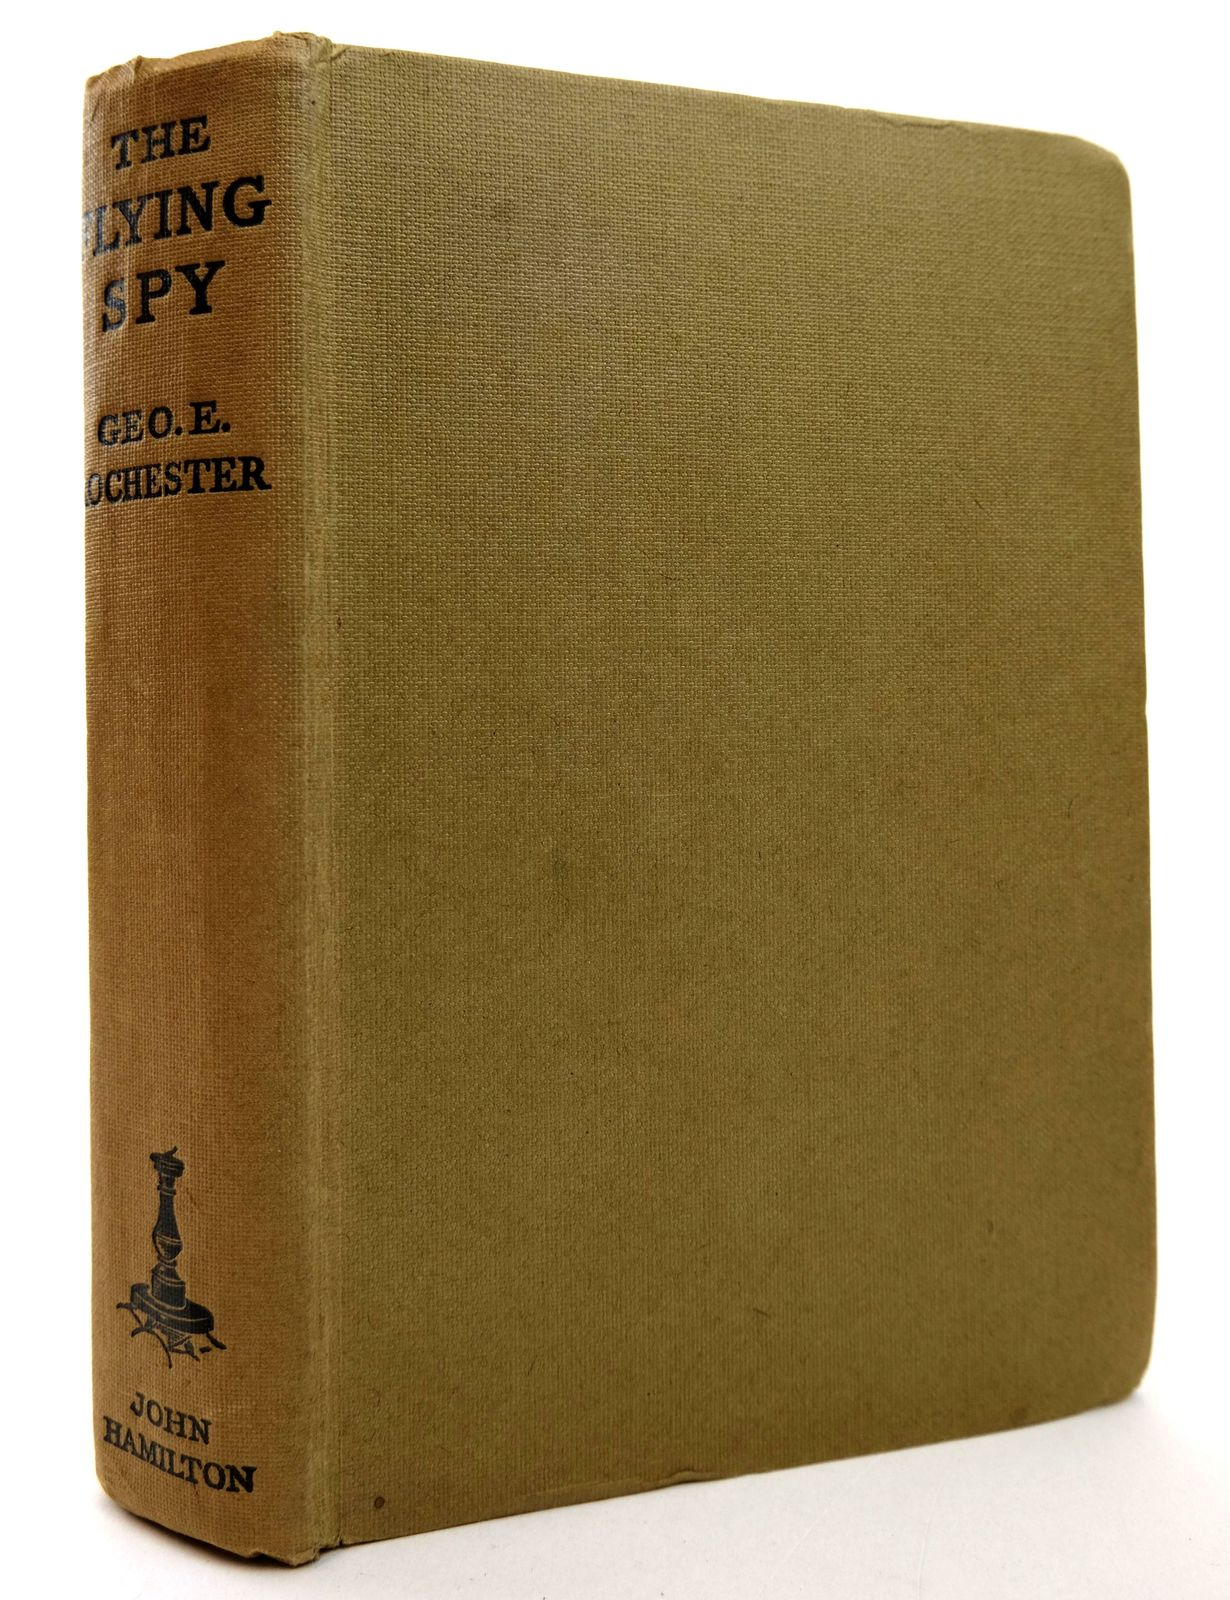 Photo of THE FLYING SPY written by Rochester, George E. published by John Hamilton Ltd. (STOCK CODE: 1818821)  for sale by Stella & Rose's Books